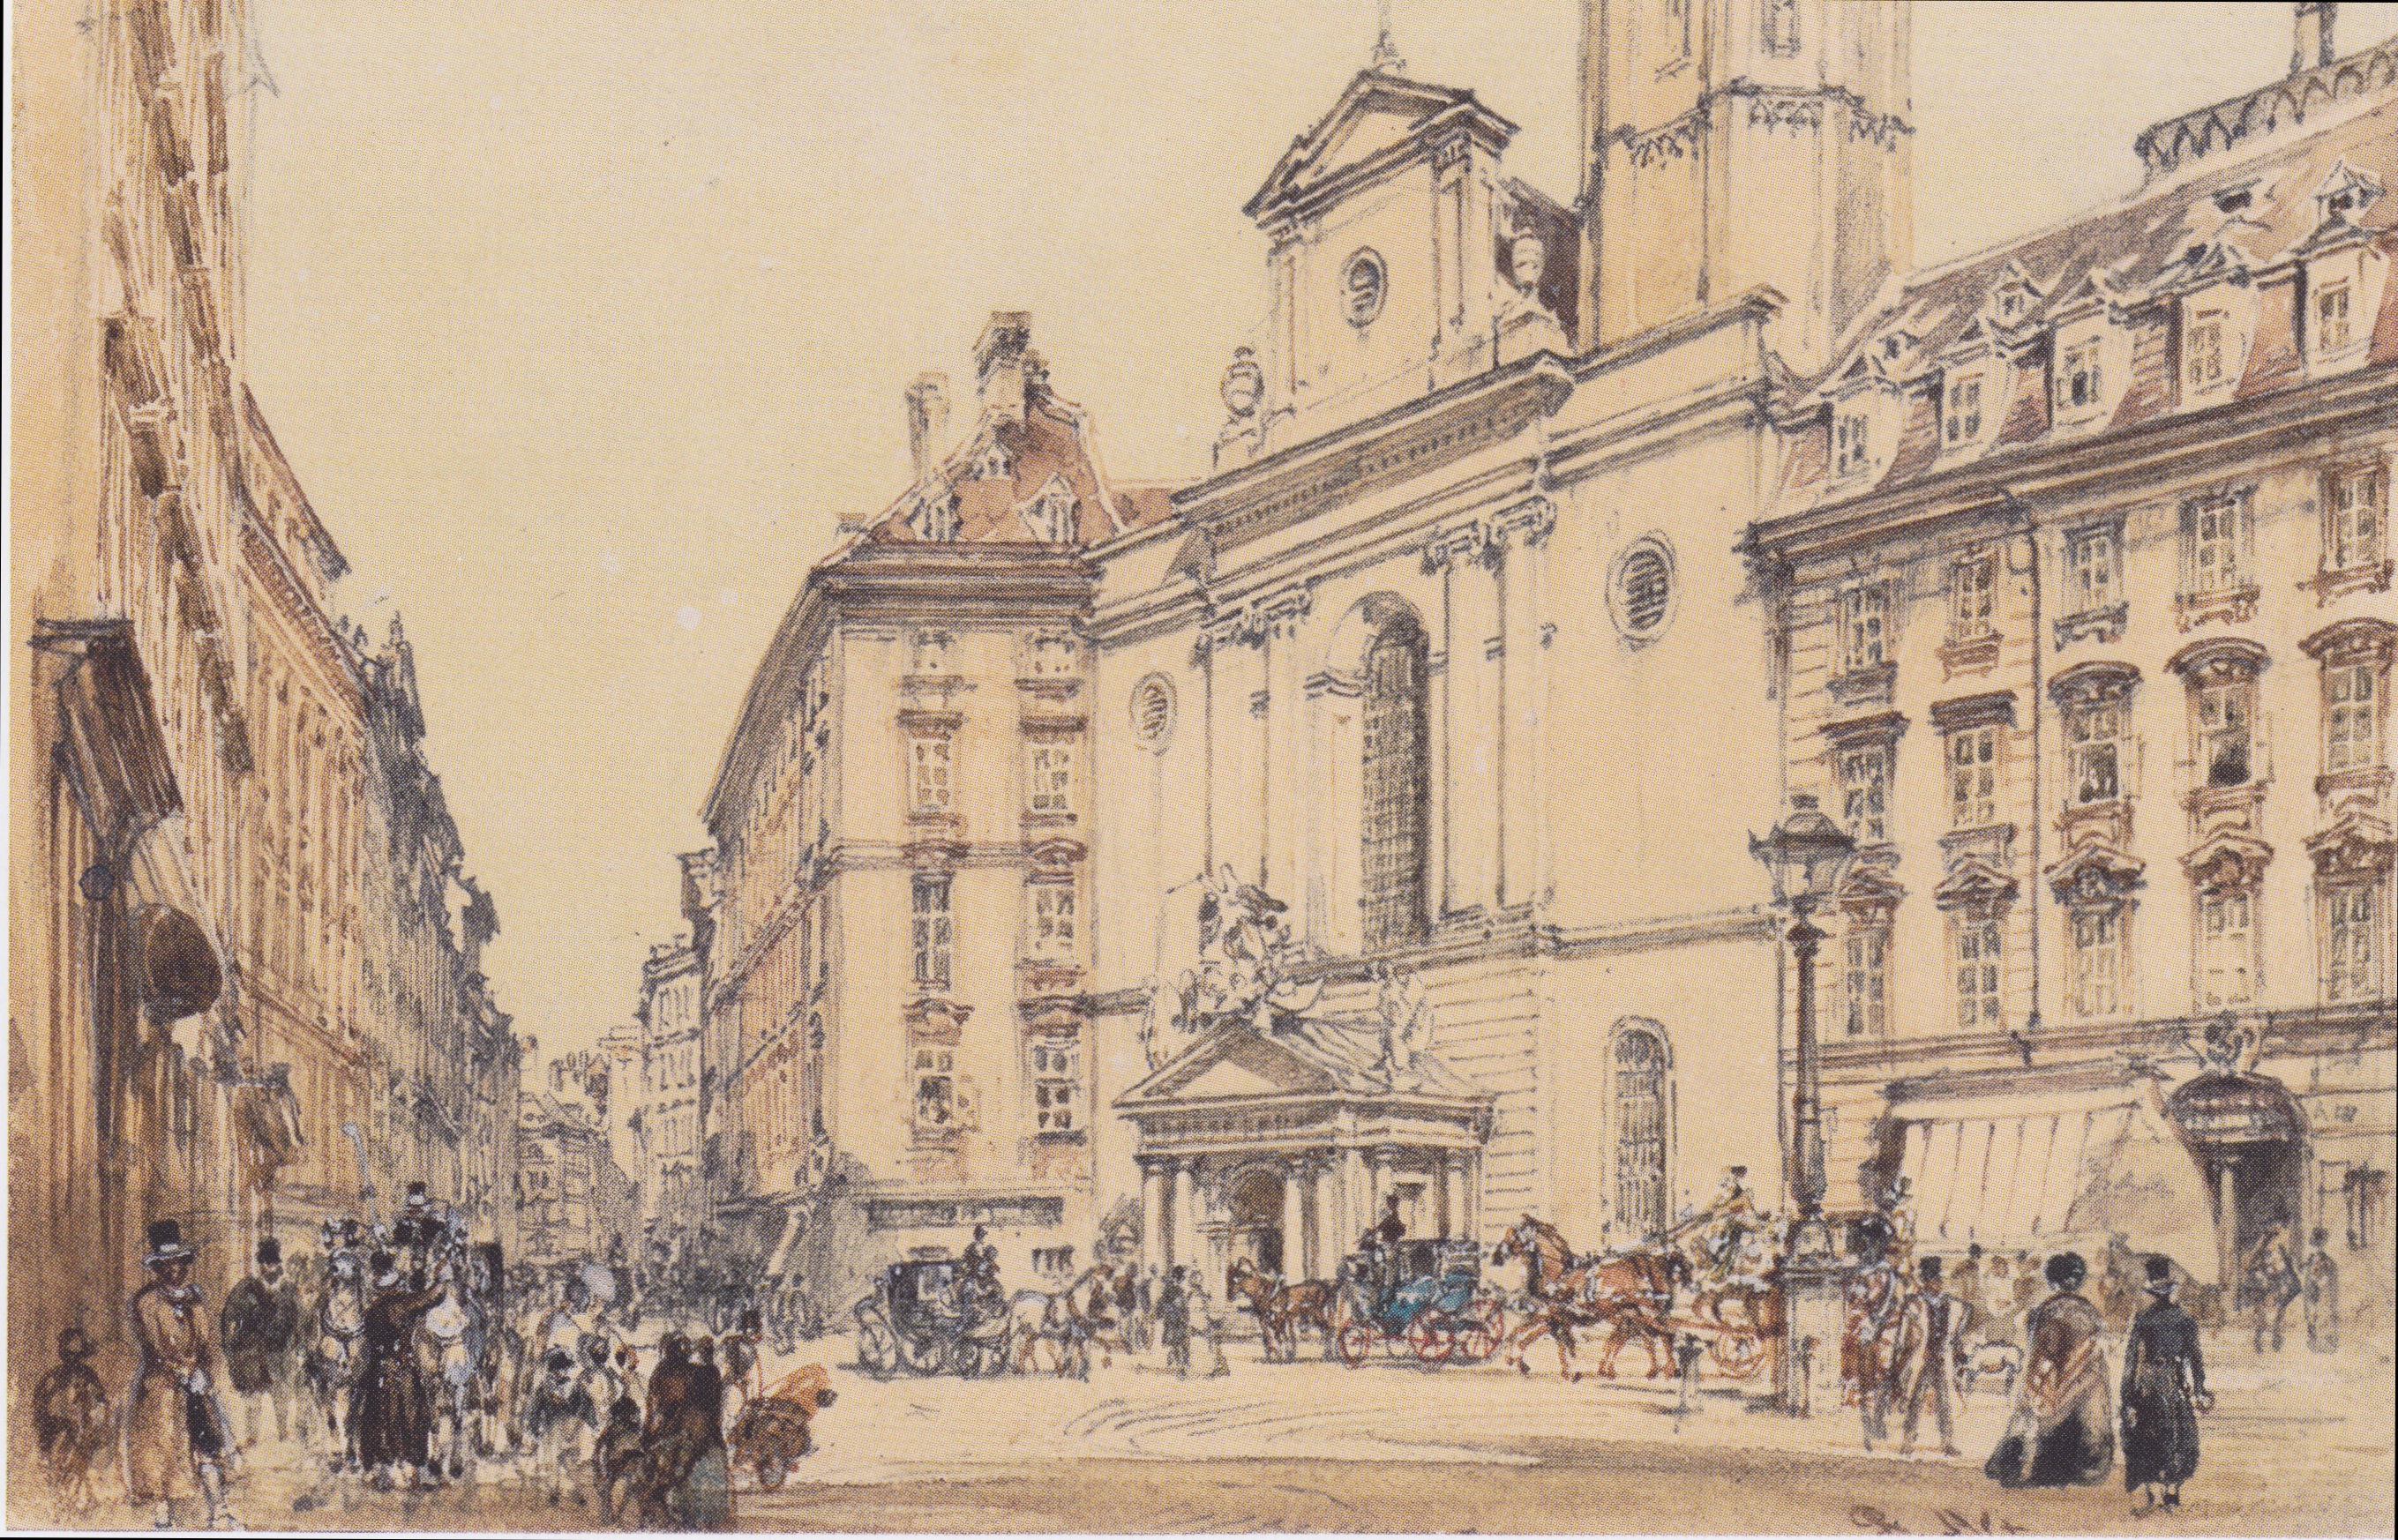 Michaelerplatz and carbon market in Vienna, 1844